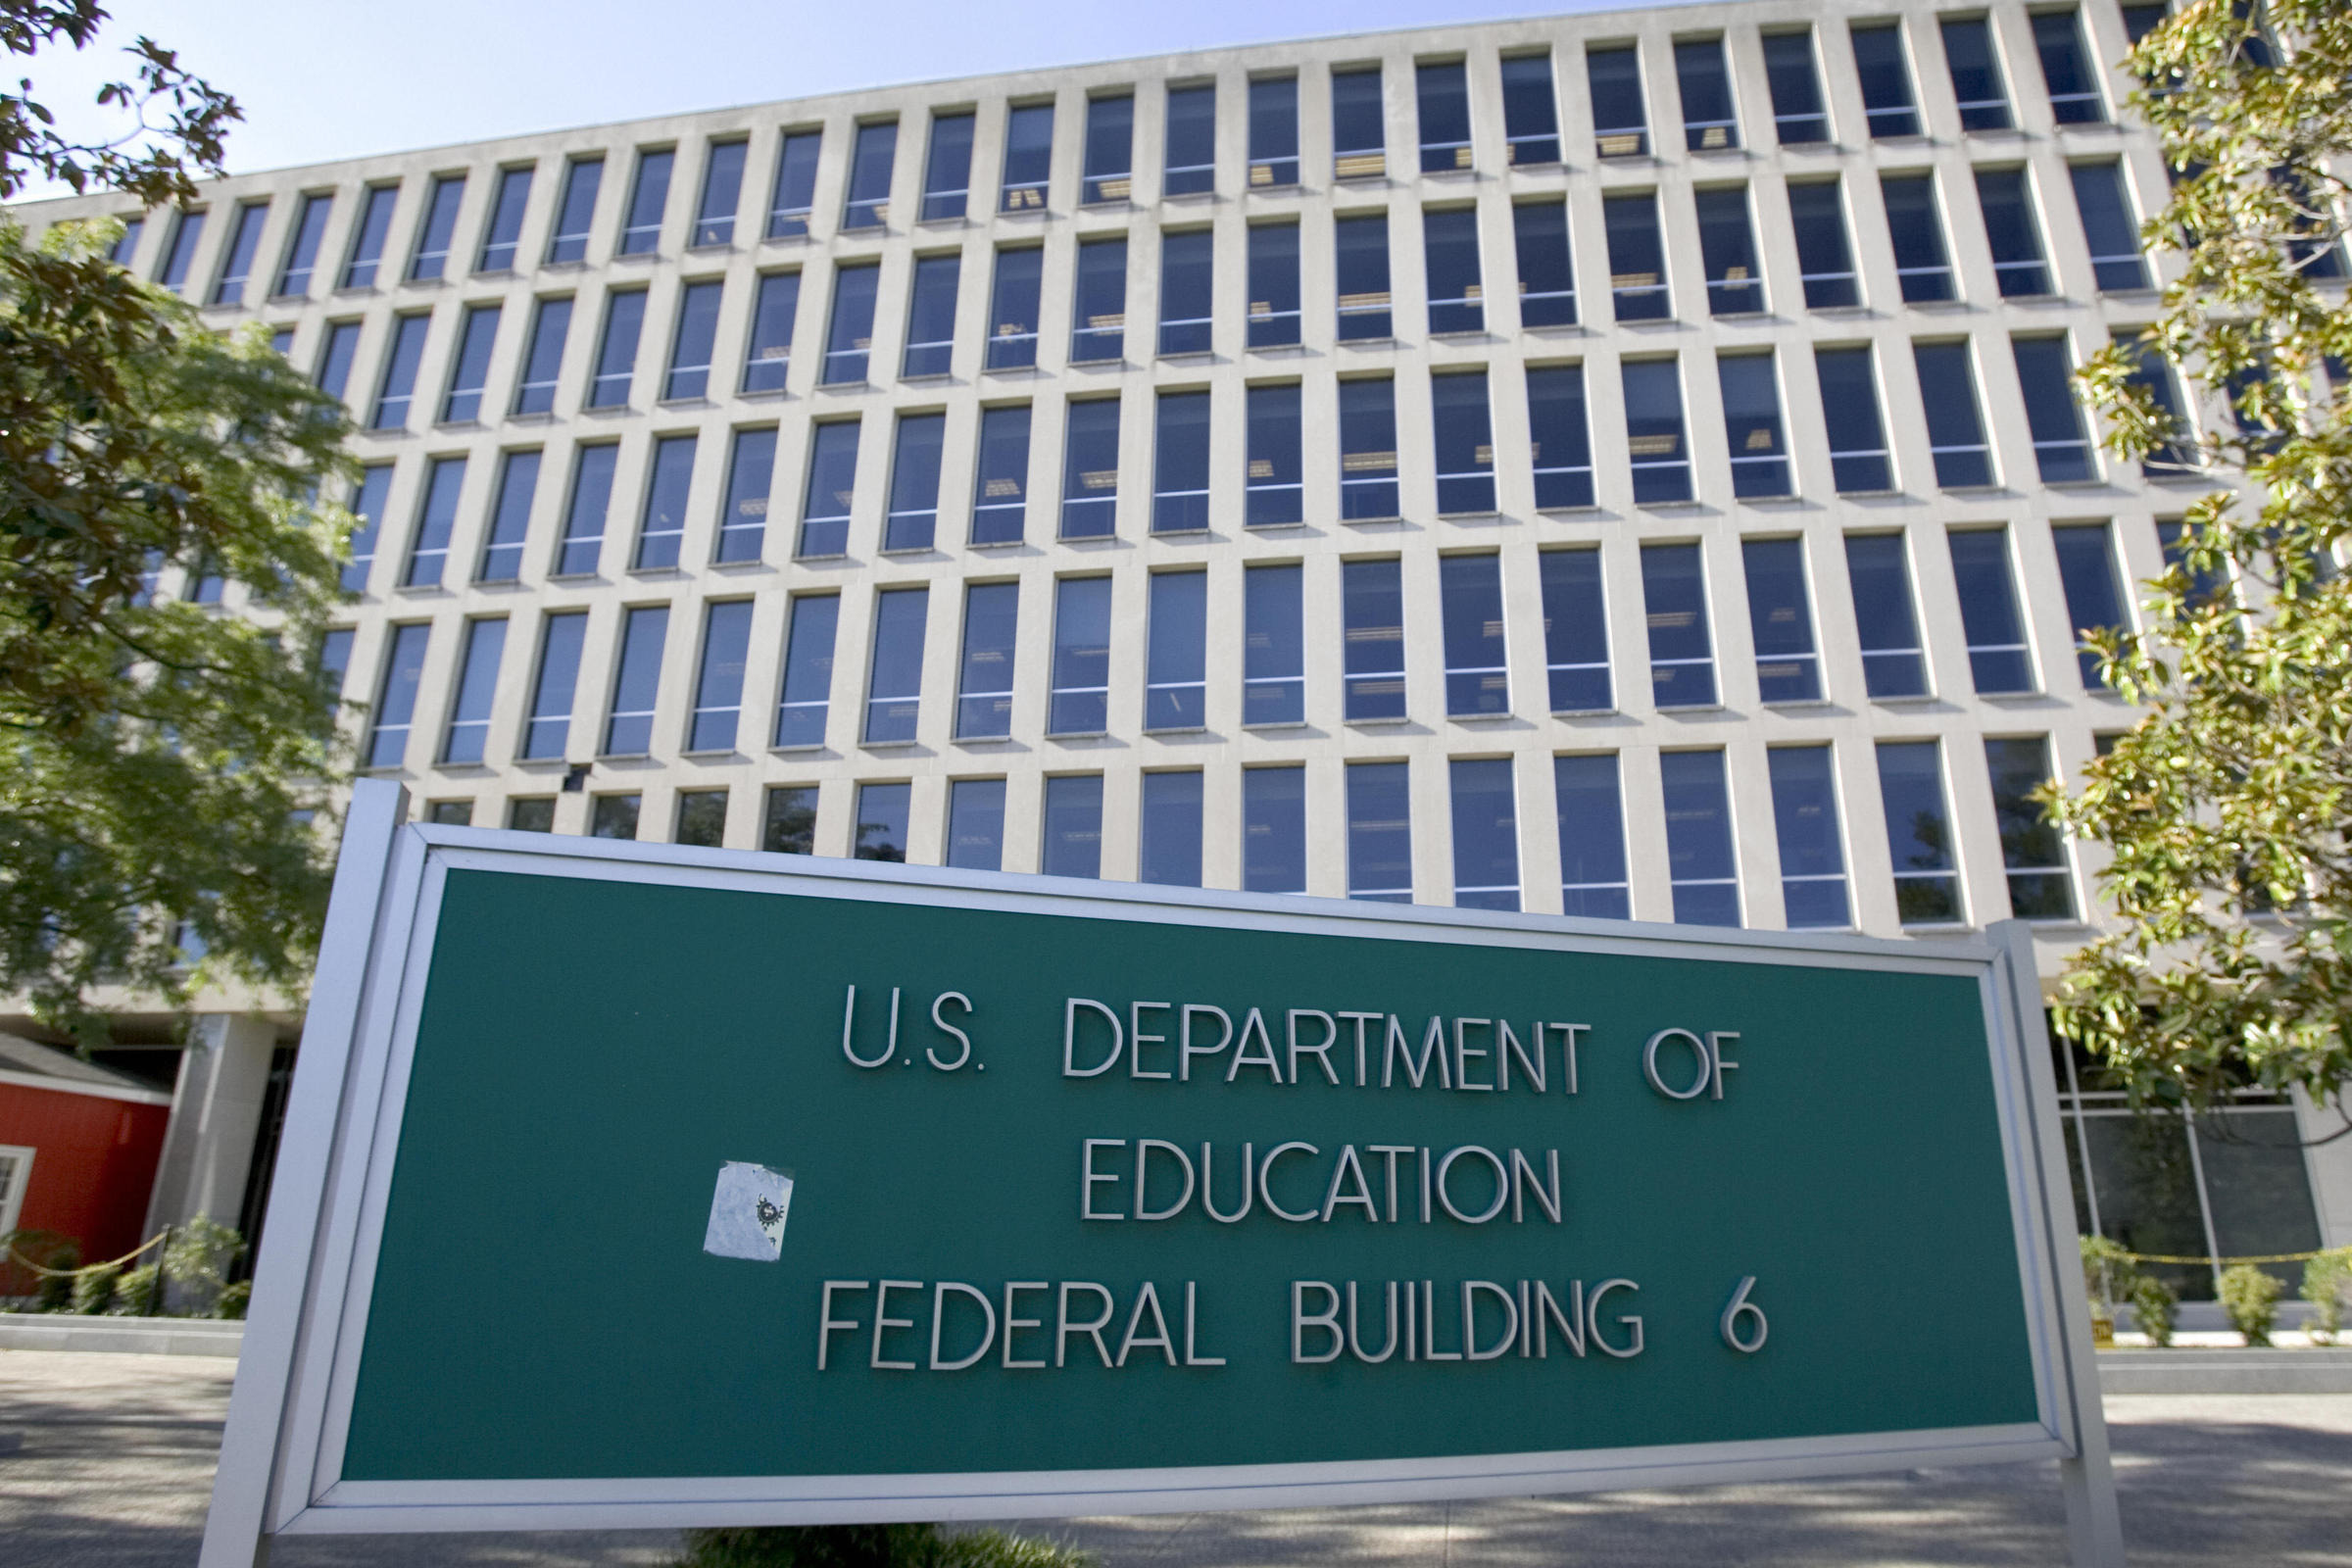 Federal financial aid official resigns before House hearing